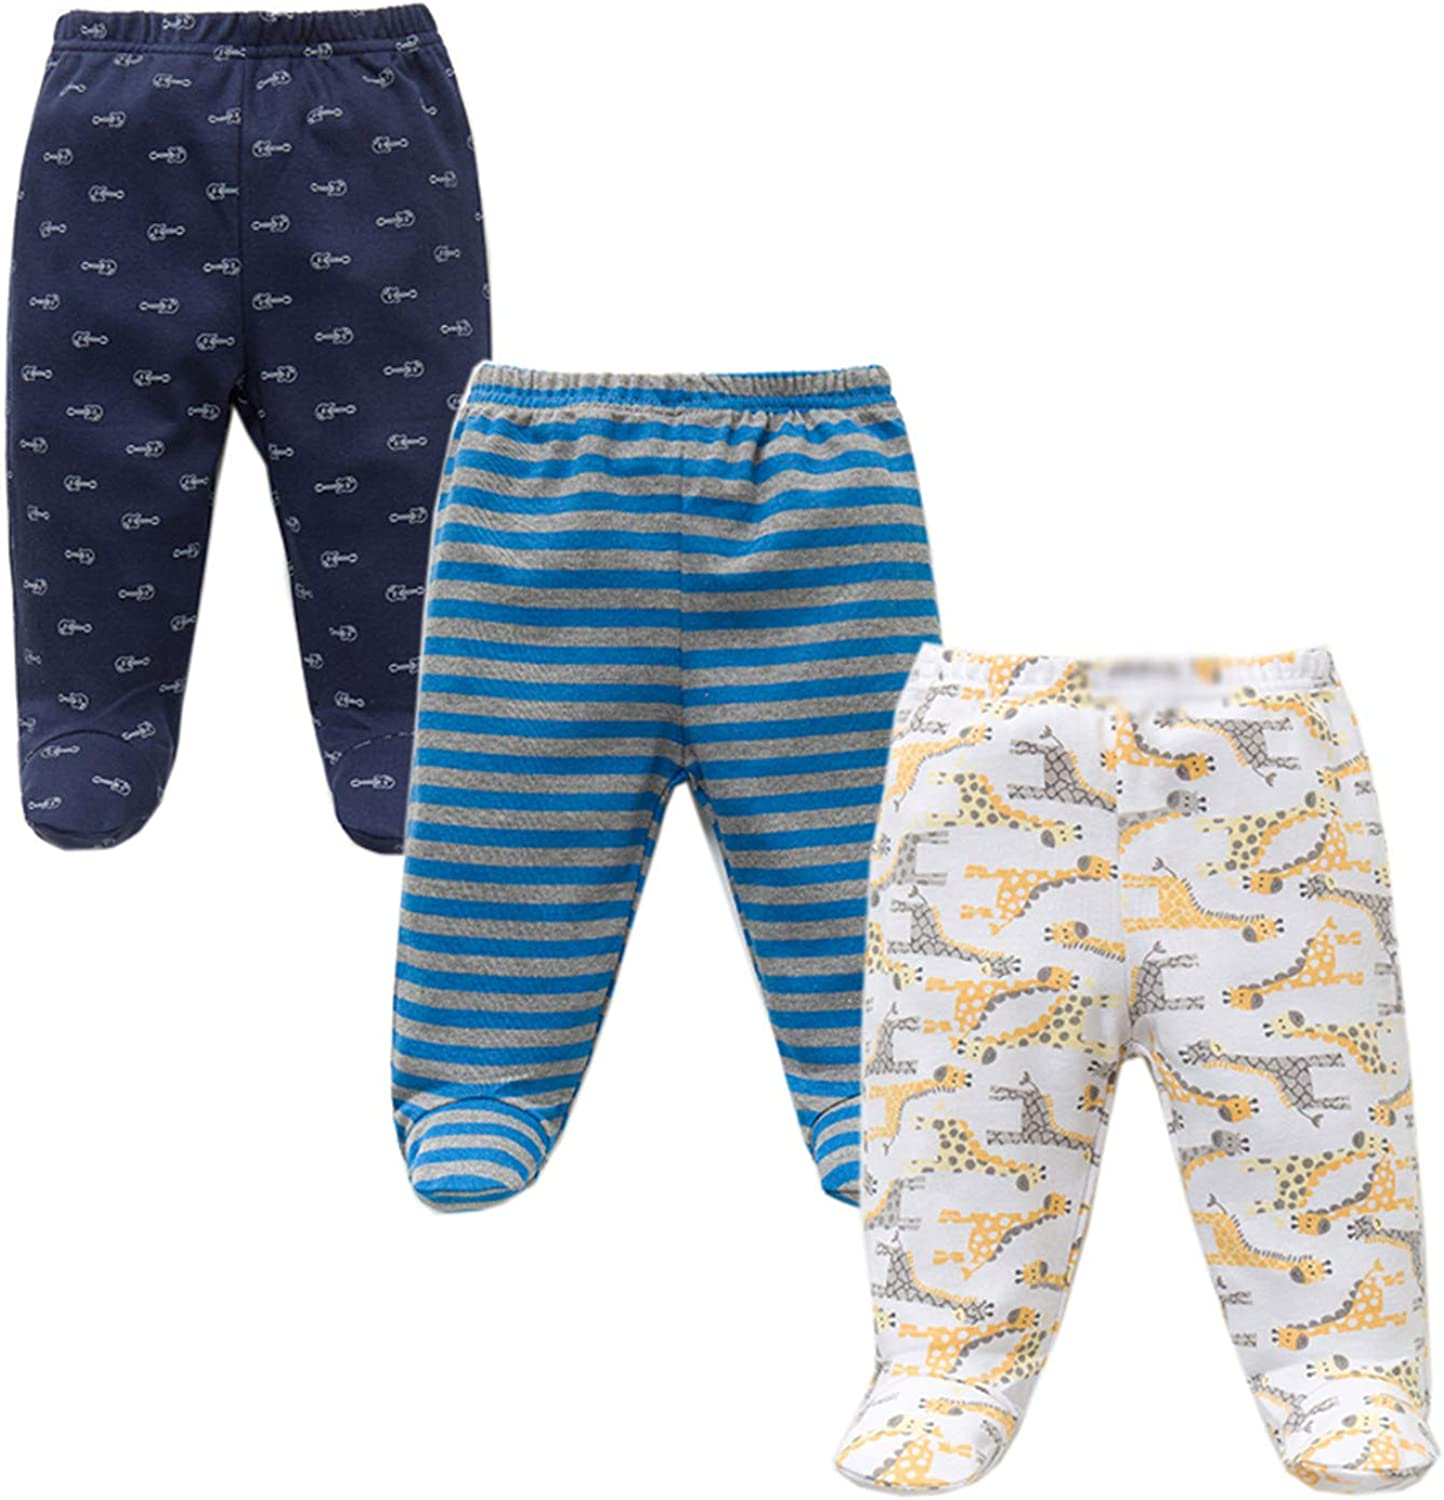 yamed 3PCS//Lot Spring Autumn Footed Baby Pants Cotton Casual Bottom Pants Newborn Baby